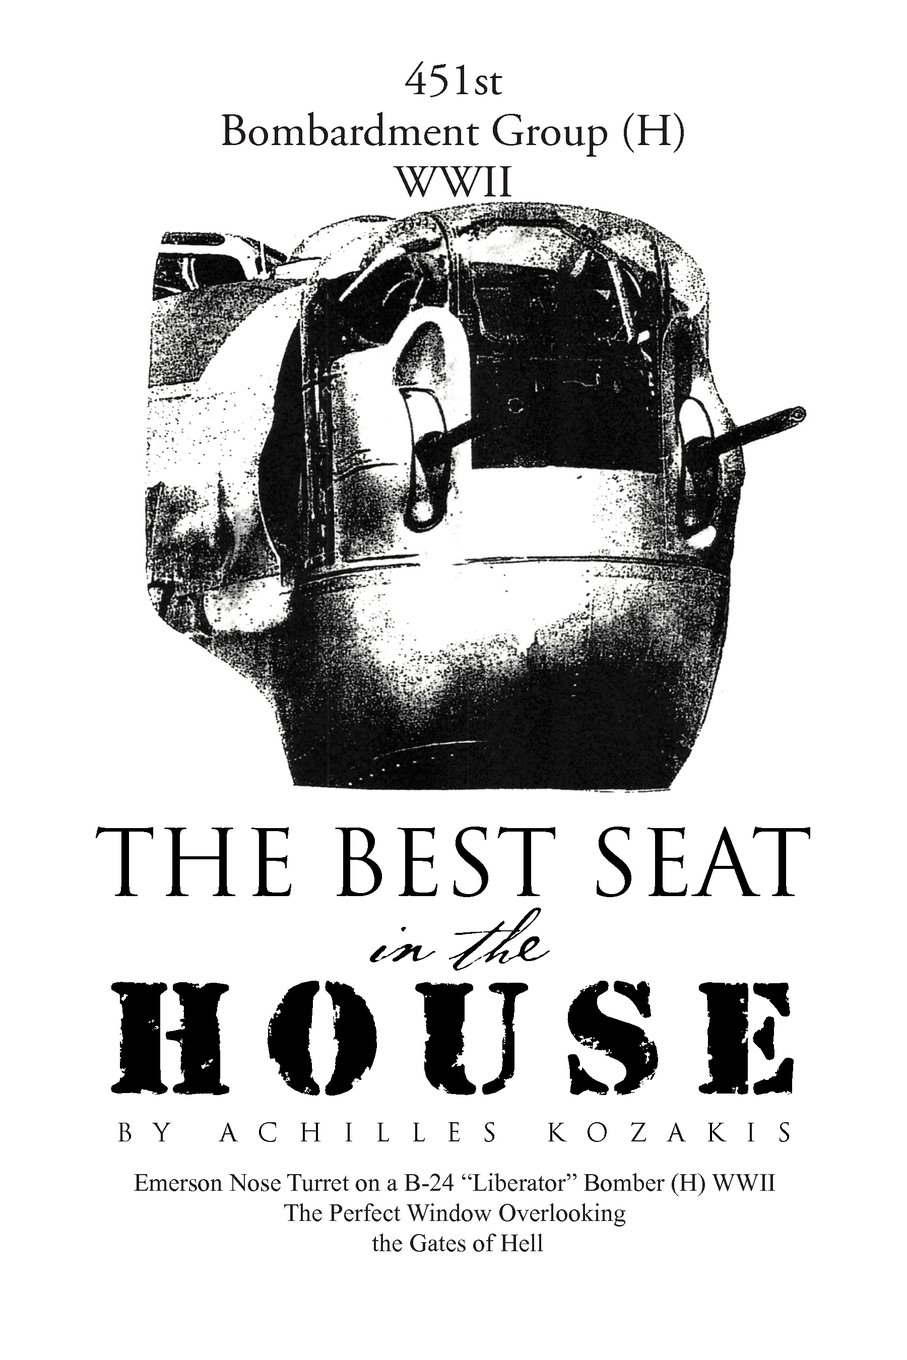 The Best Seat in the House: Short Stories and Vignettes